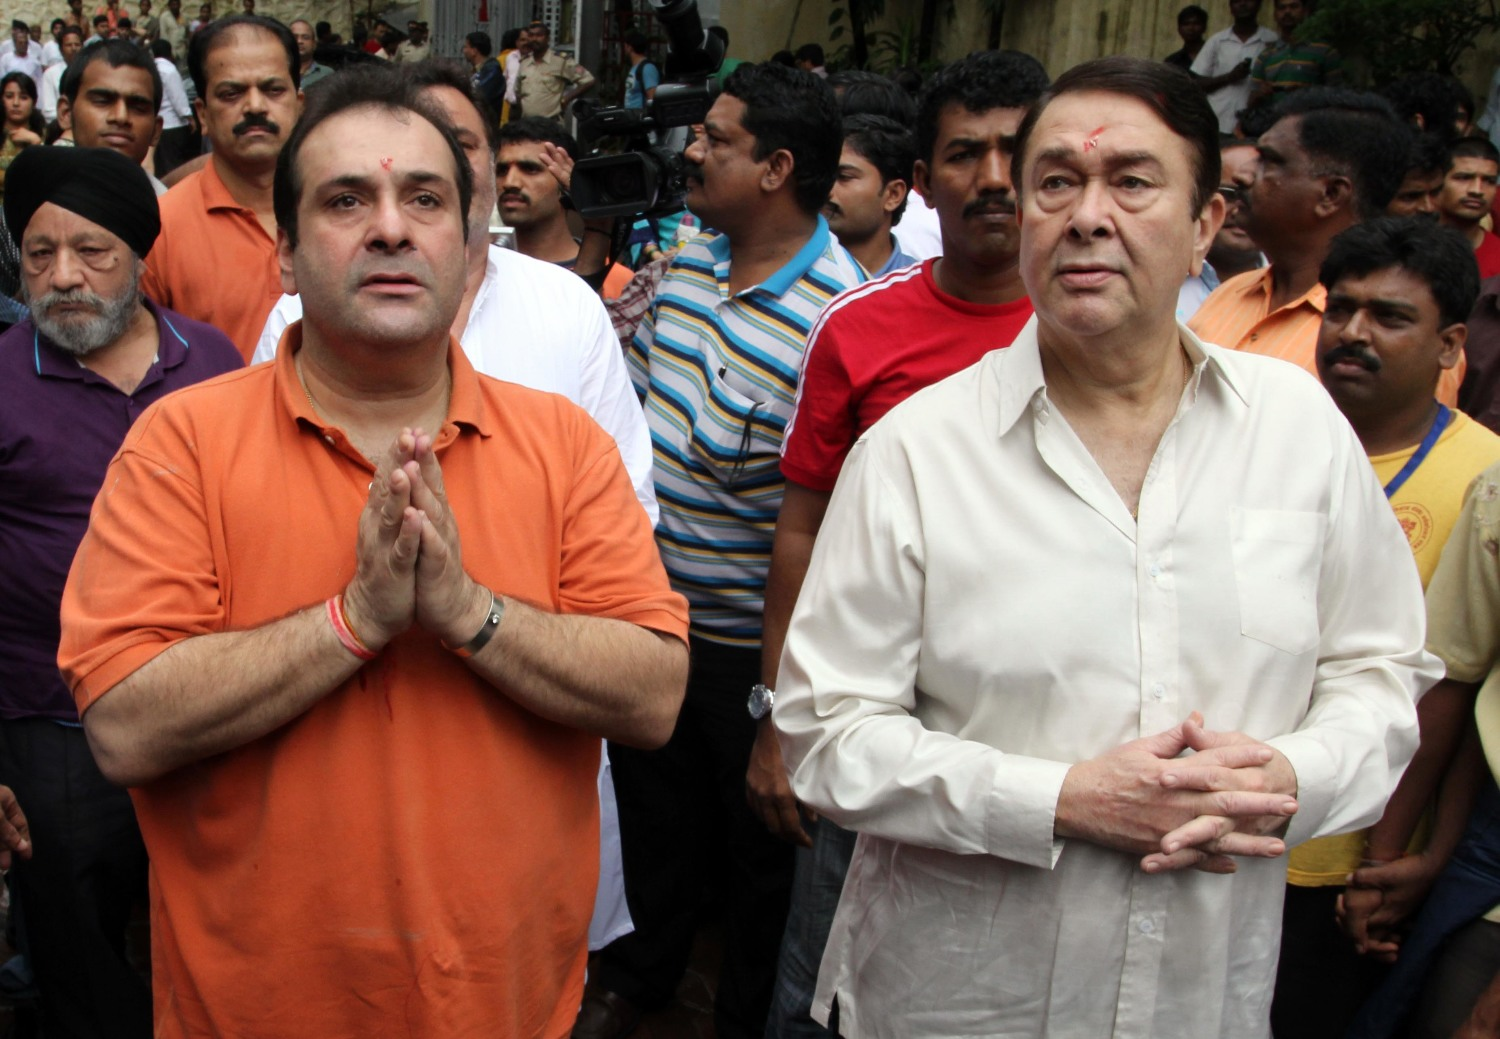 rajiv kapoor daughterrajiv kapoor wikipedia, rajiv kapoor, rajiv kapoor son, rajiv kapoor family, rajiv kapoor aarti sabharwal, rajiv kapoor wife photos, rajiv kapoor family photo, rajiv kapoor daughter, rajiv kapoor net worth, rajiv kapoor songs, rajiv kapoor marriage photos, rajiv kapoor visa, rajiv kapoor fortis, rajiv kapoor songs list